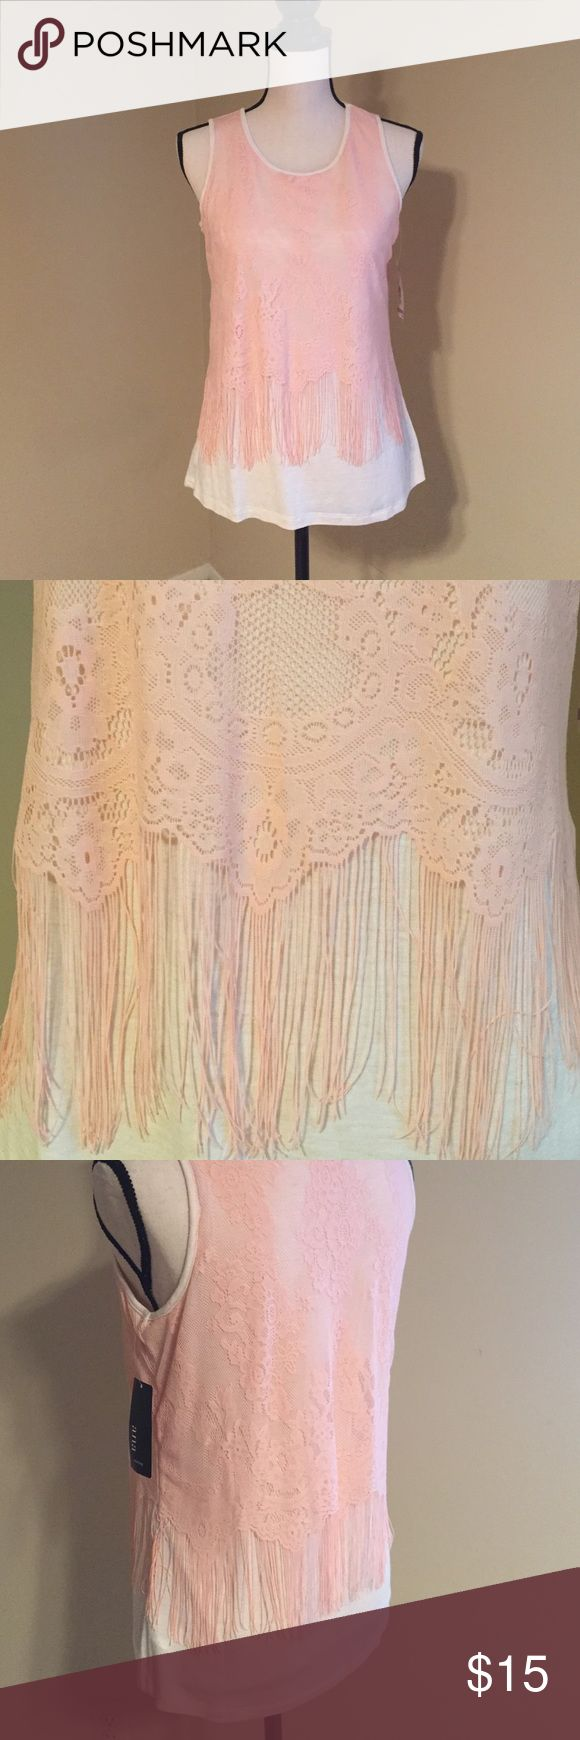 ANA petite S pink ivory fringe tank NWT Super cute and fun! Pink fringe details over a cream tank. Size PS. Outer shell is nylon inner tank is viscose spandex a.n.a Tops Tank Tops